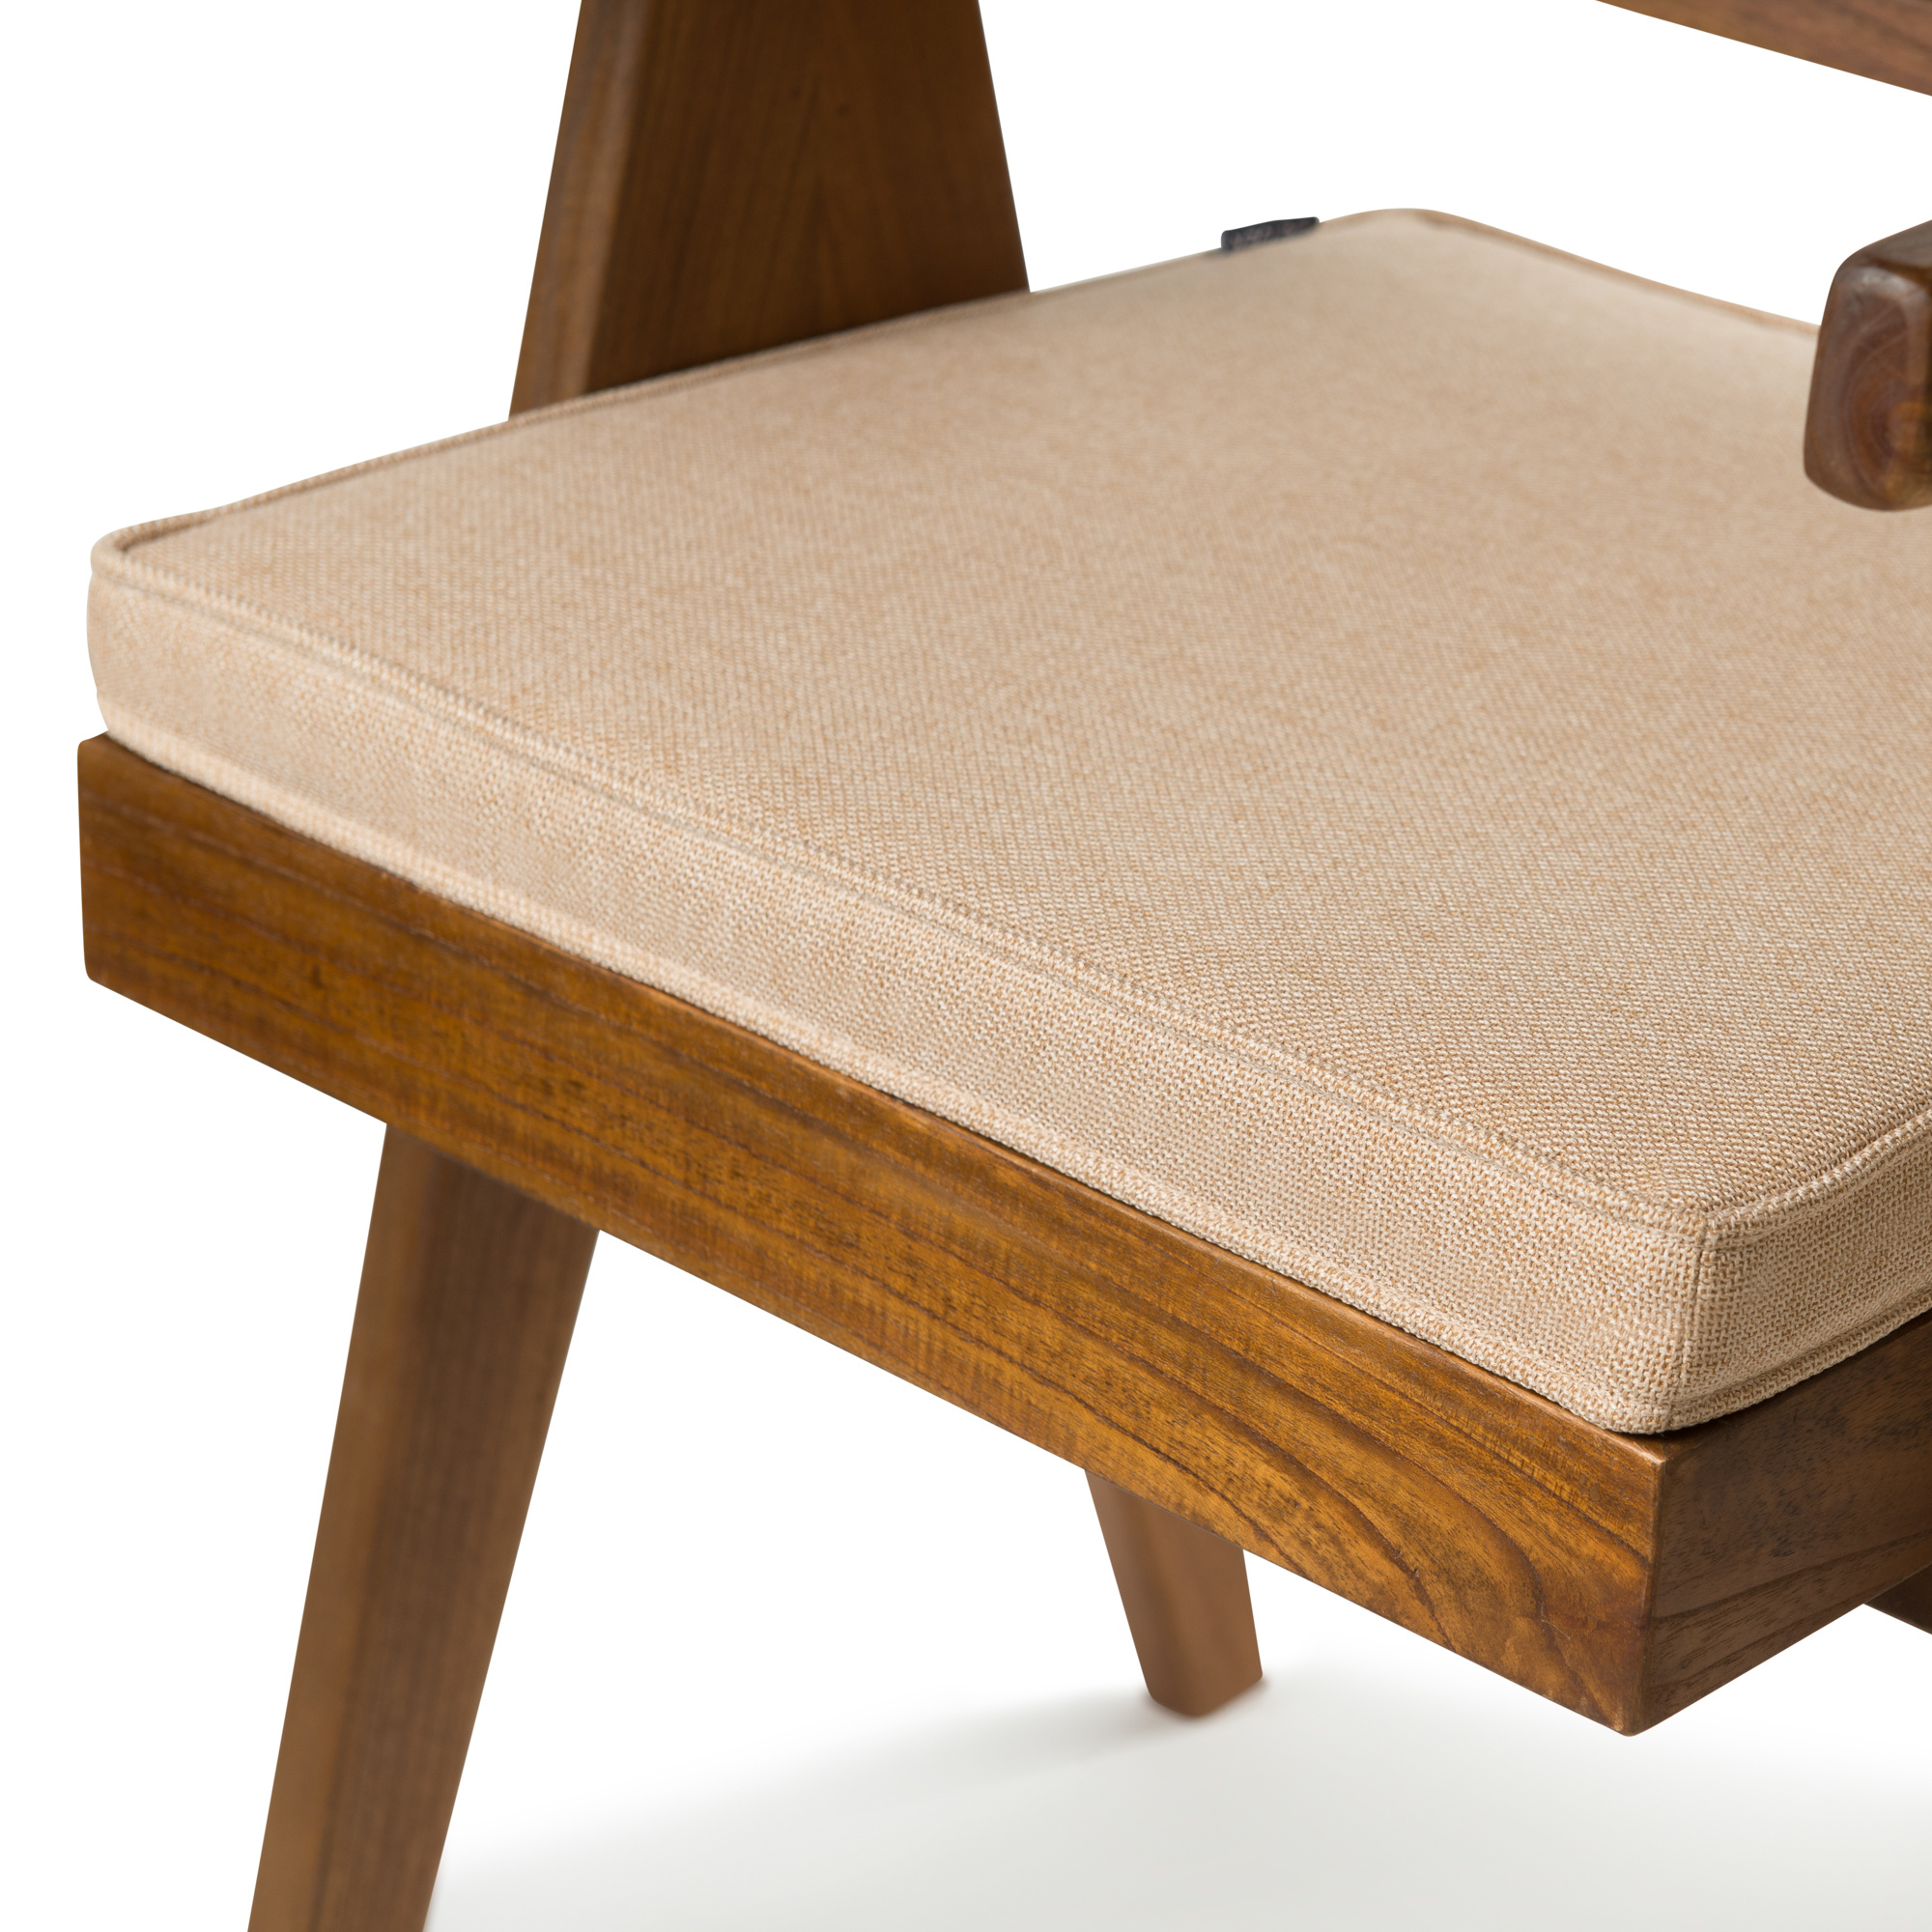 Office Chair Cushion - Light Brown-4